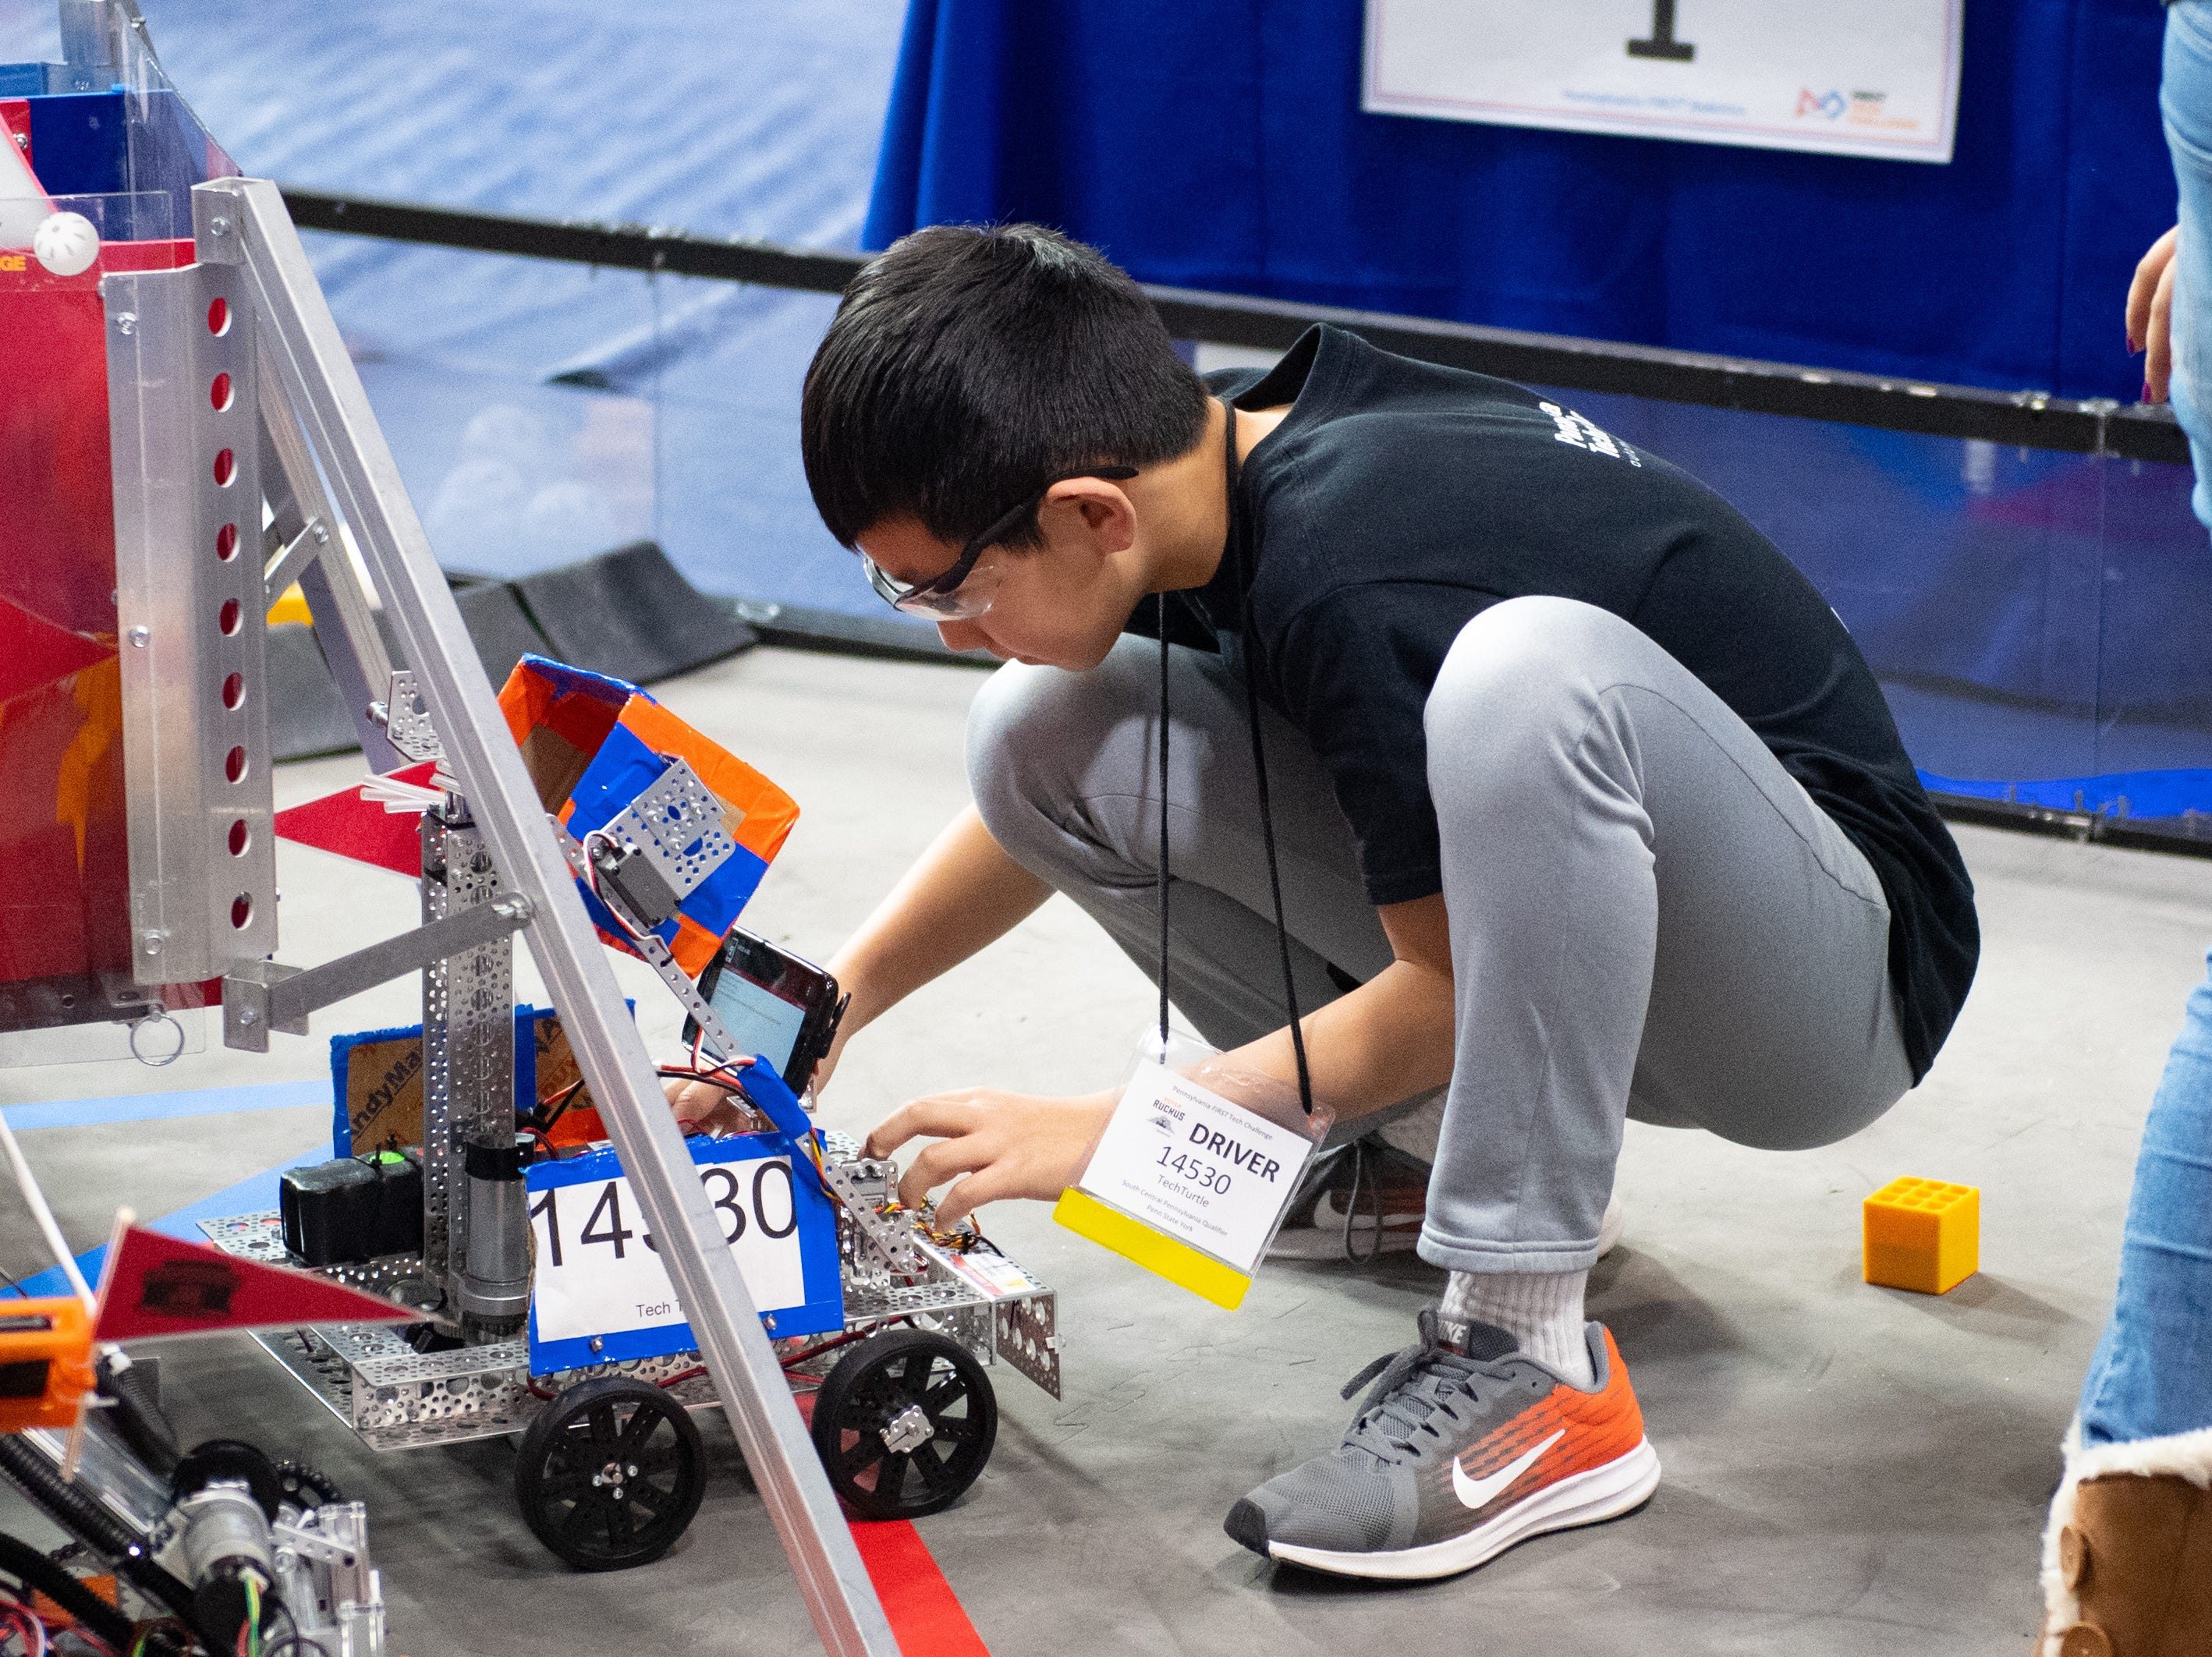 Before the each match starts, players secure their robots to the spaceship in their specific starting positions during the First Tech Challenge robotics competition at Penn State York, February 2, 2019.